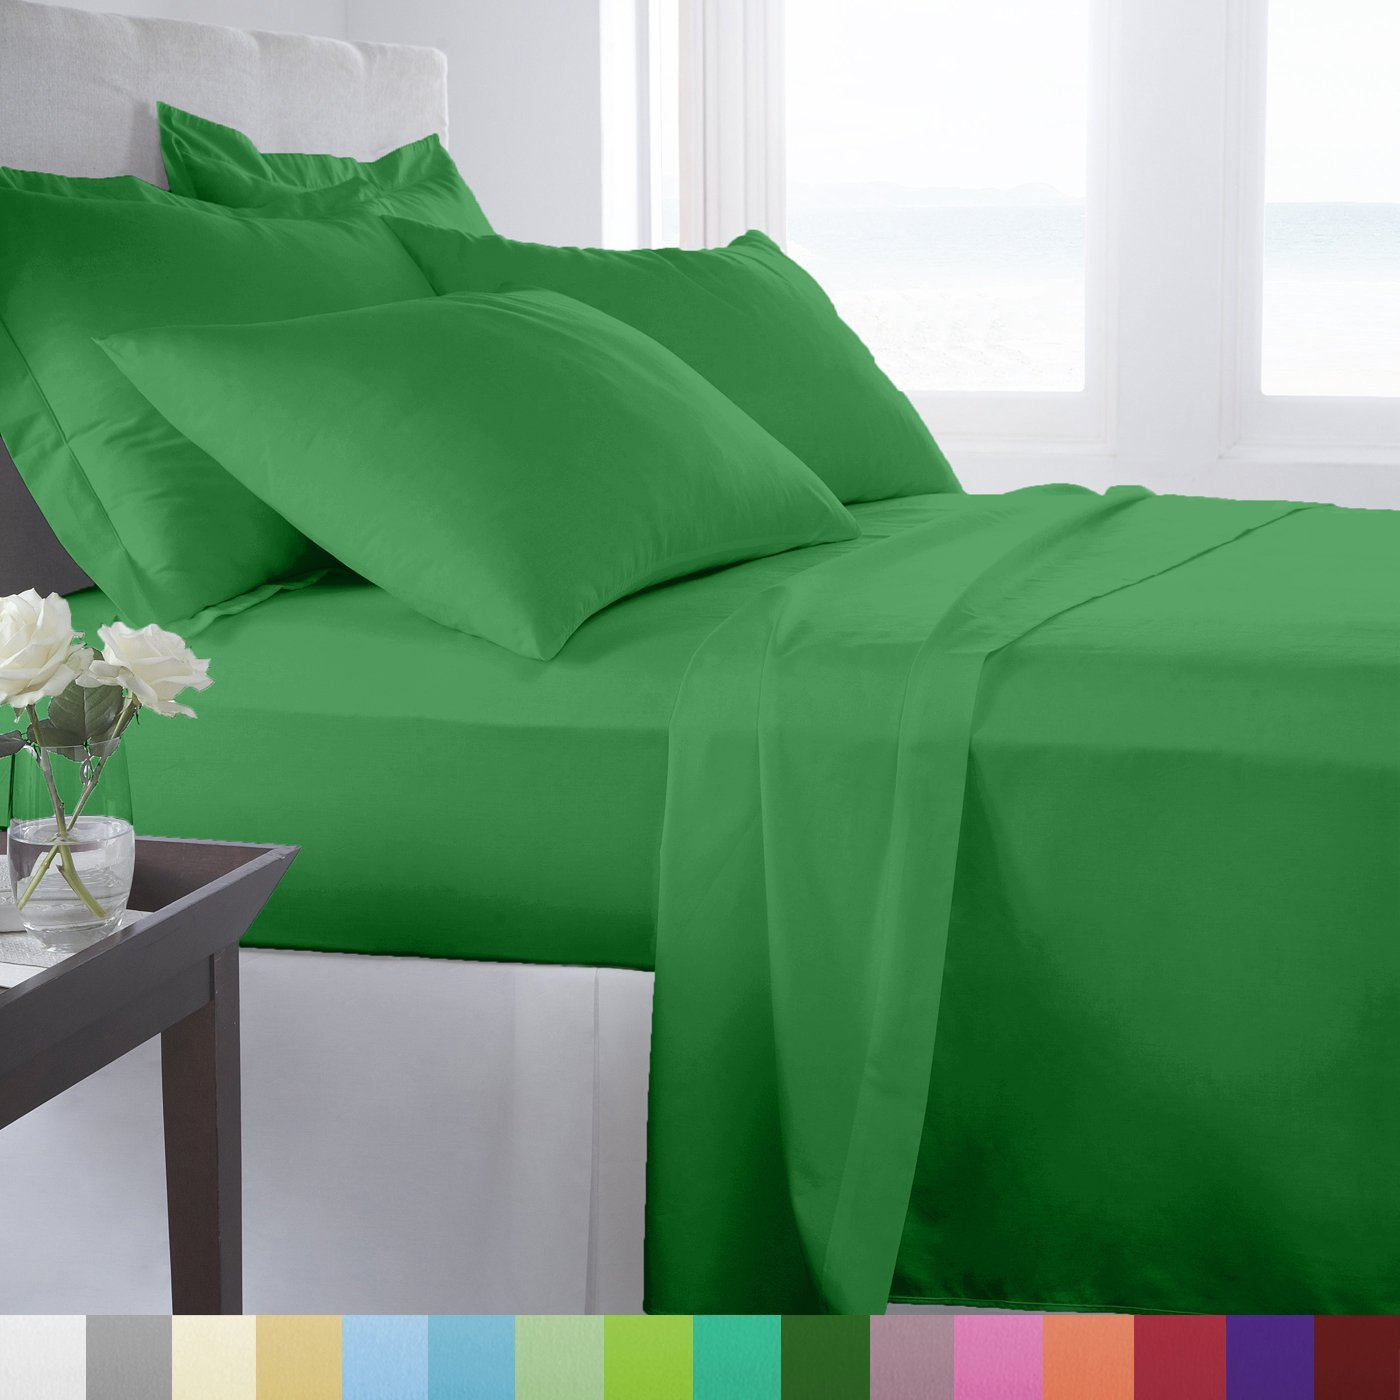 Green Bed Sheet Sets Discounted Sale Ease Bedding With Style